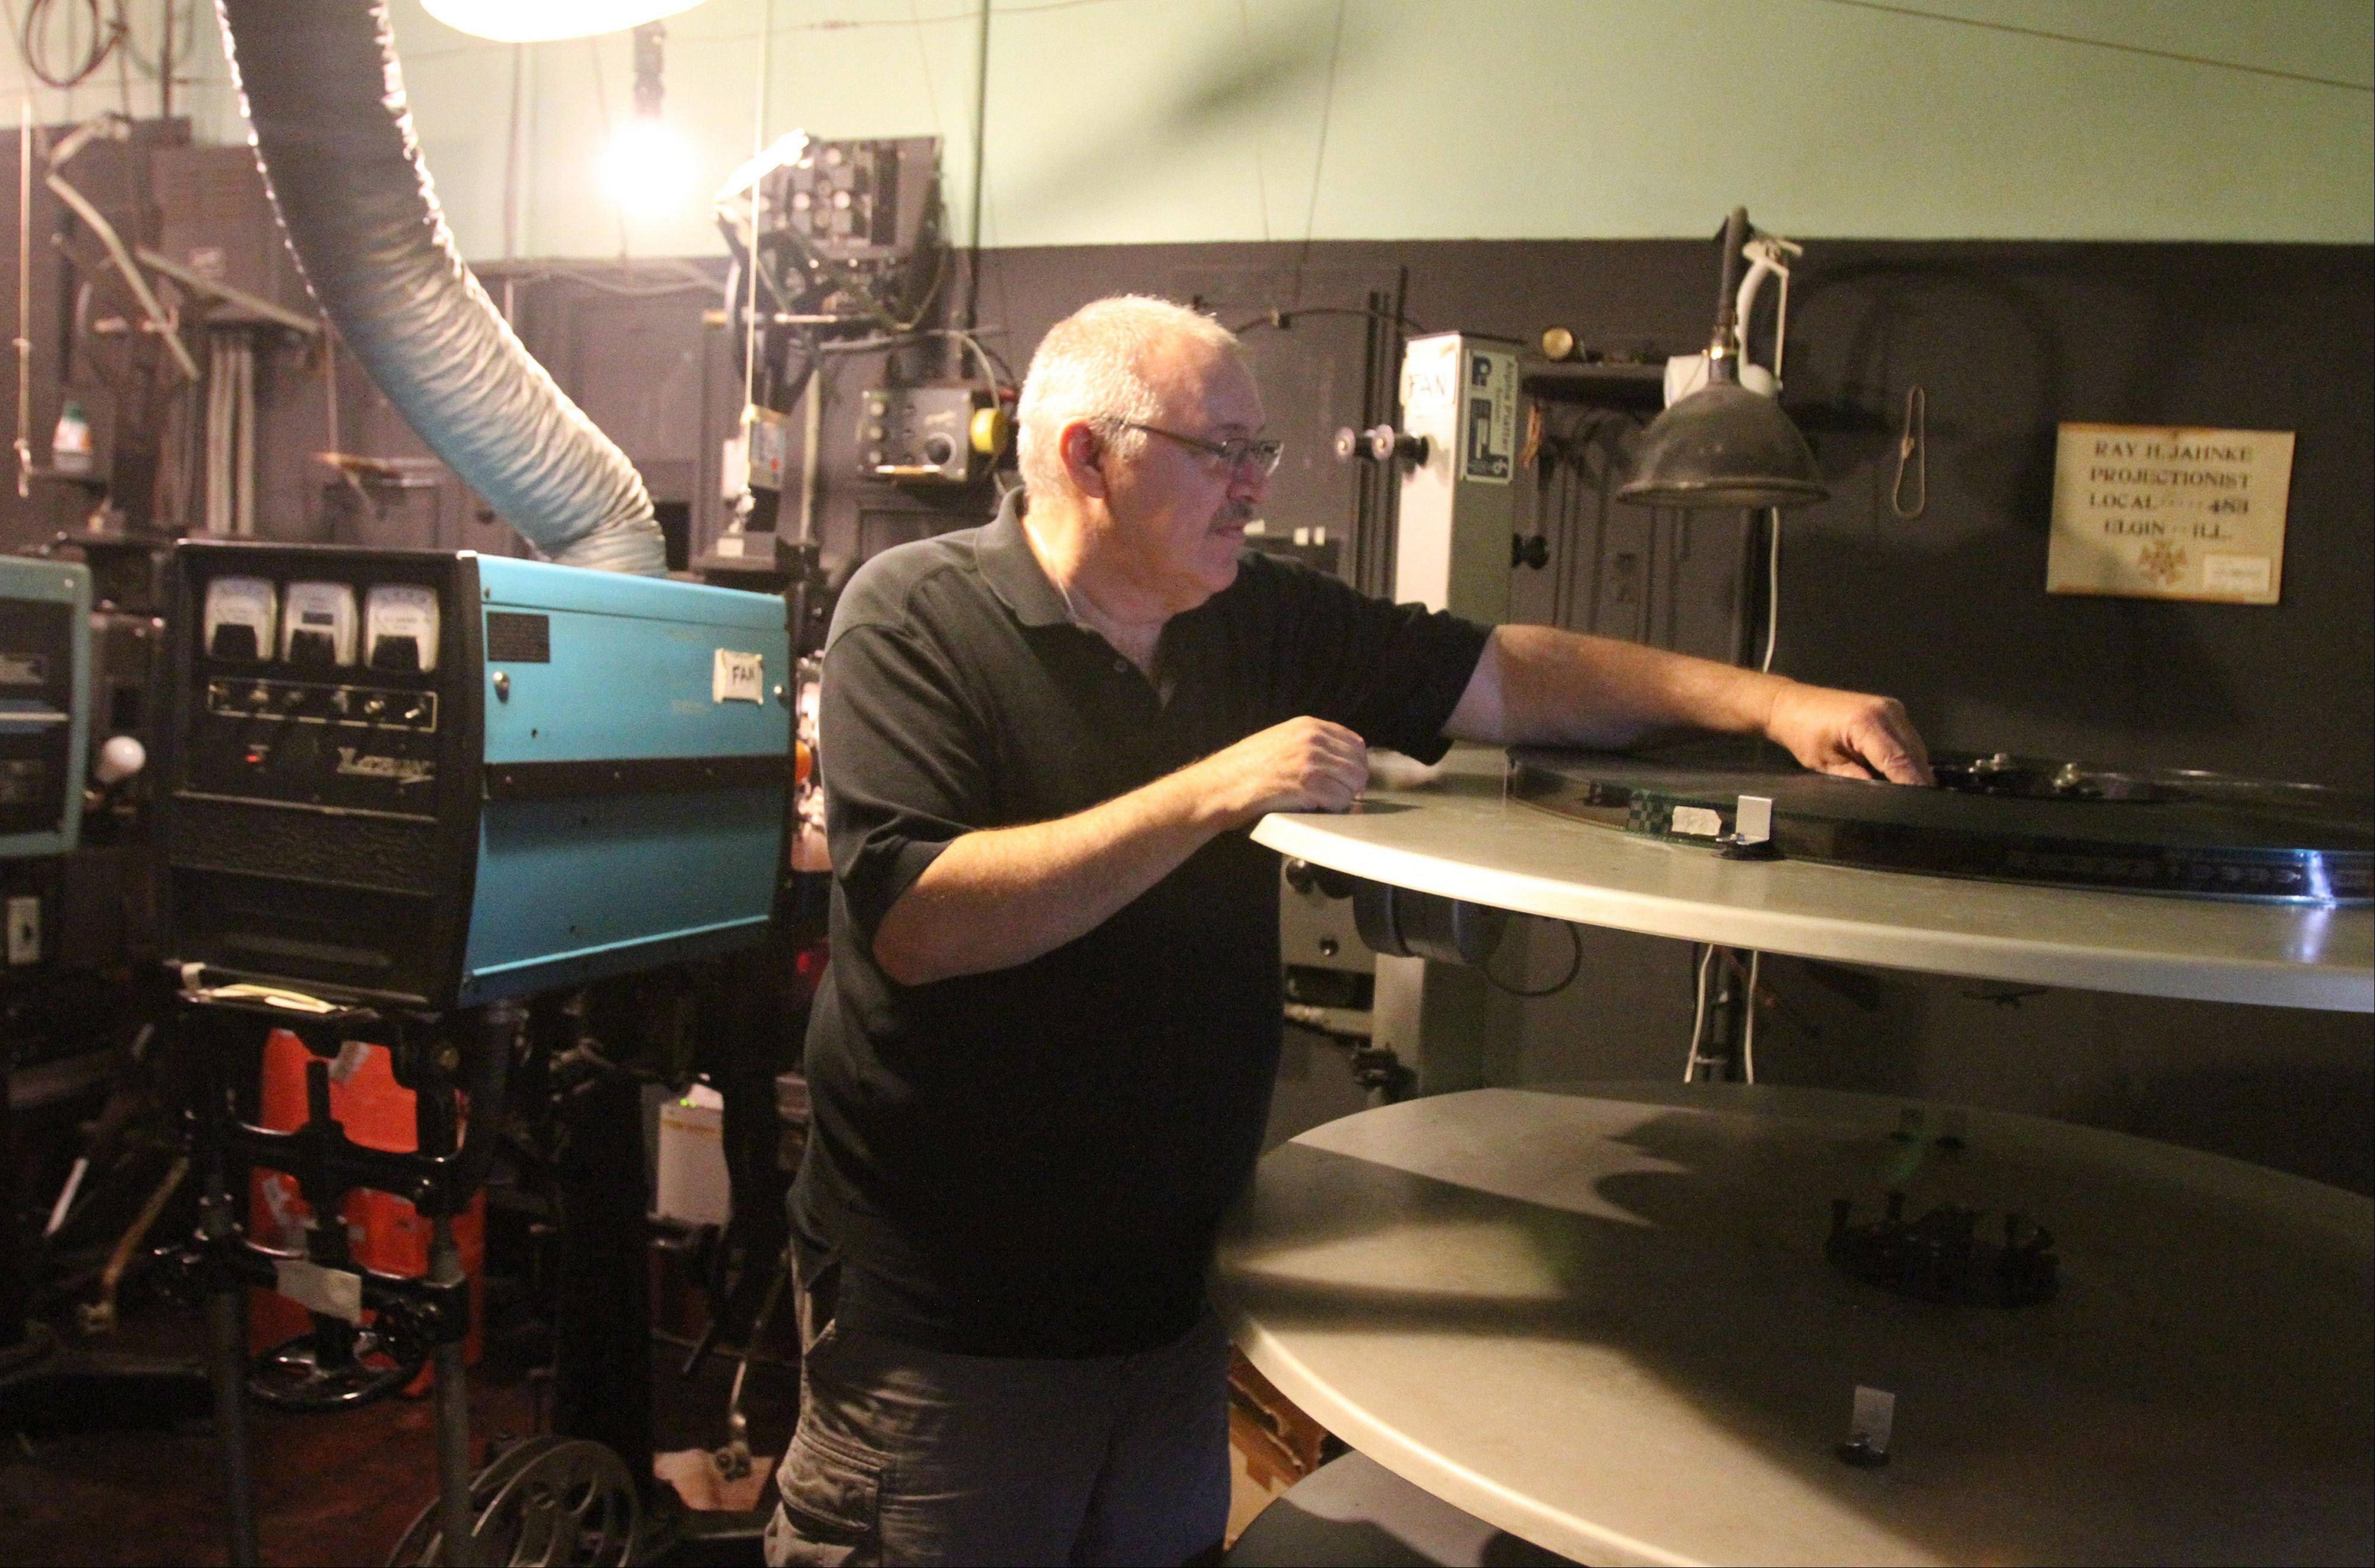 The Catlow theater co-owner Tim O'Connor demonstrates how movie film is currently loaded onto a giant reel table that is then fed into the Simplex XL film projector at the theater in Barrington. The projector is more than 50 years old. The reel table allows the film to be shown uninterrupted by reel changes.